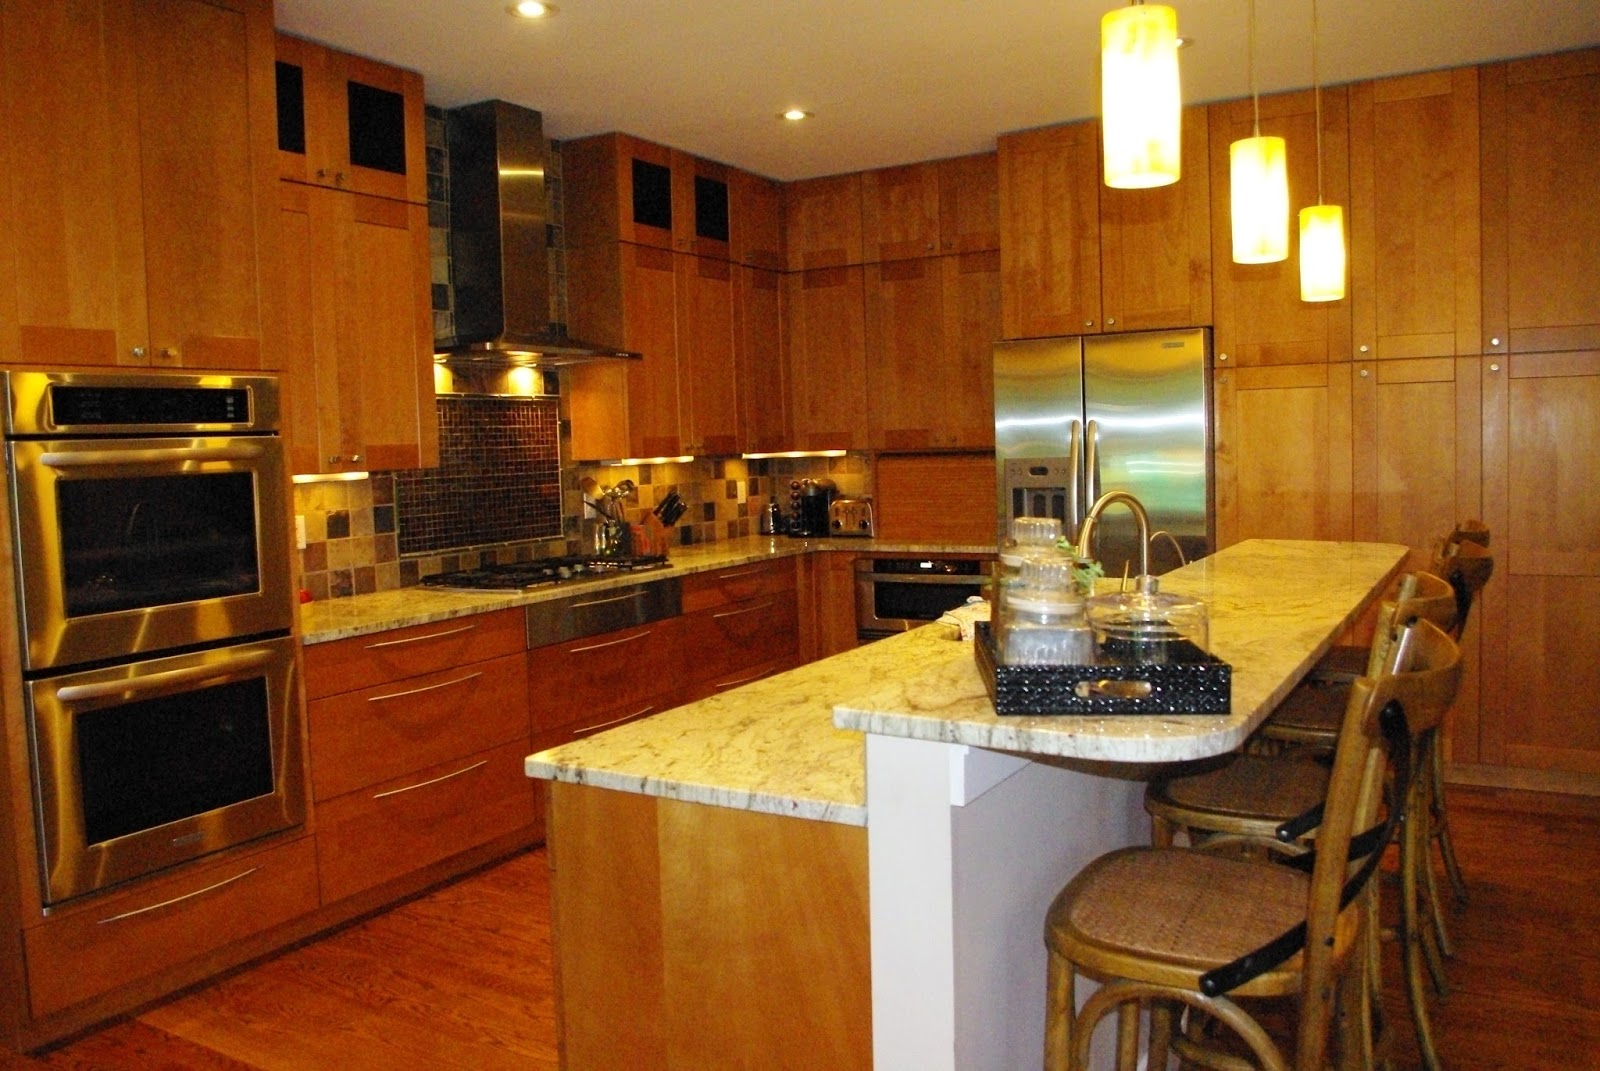 Our life at 31 derful my 2008 dream kitchen that i still for Our life in the kitchen